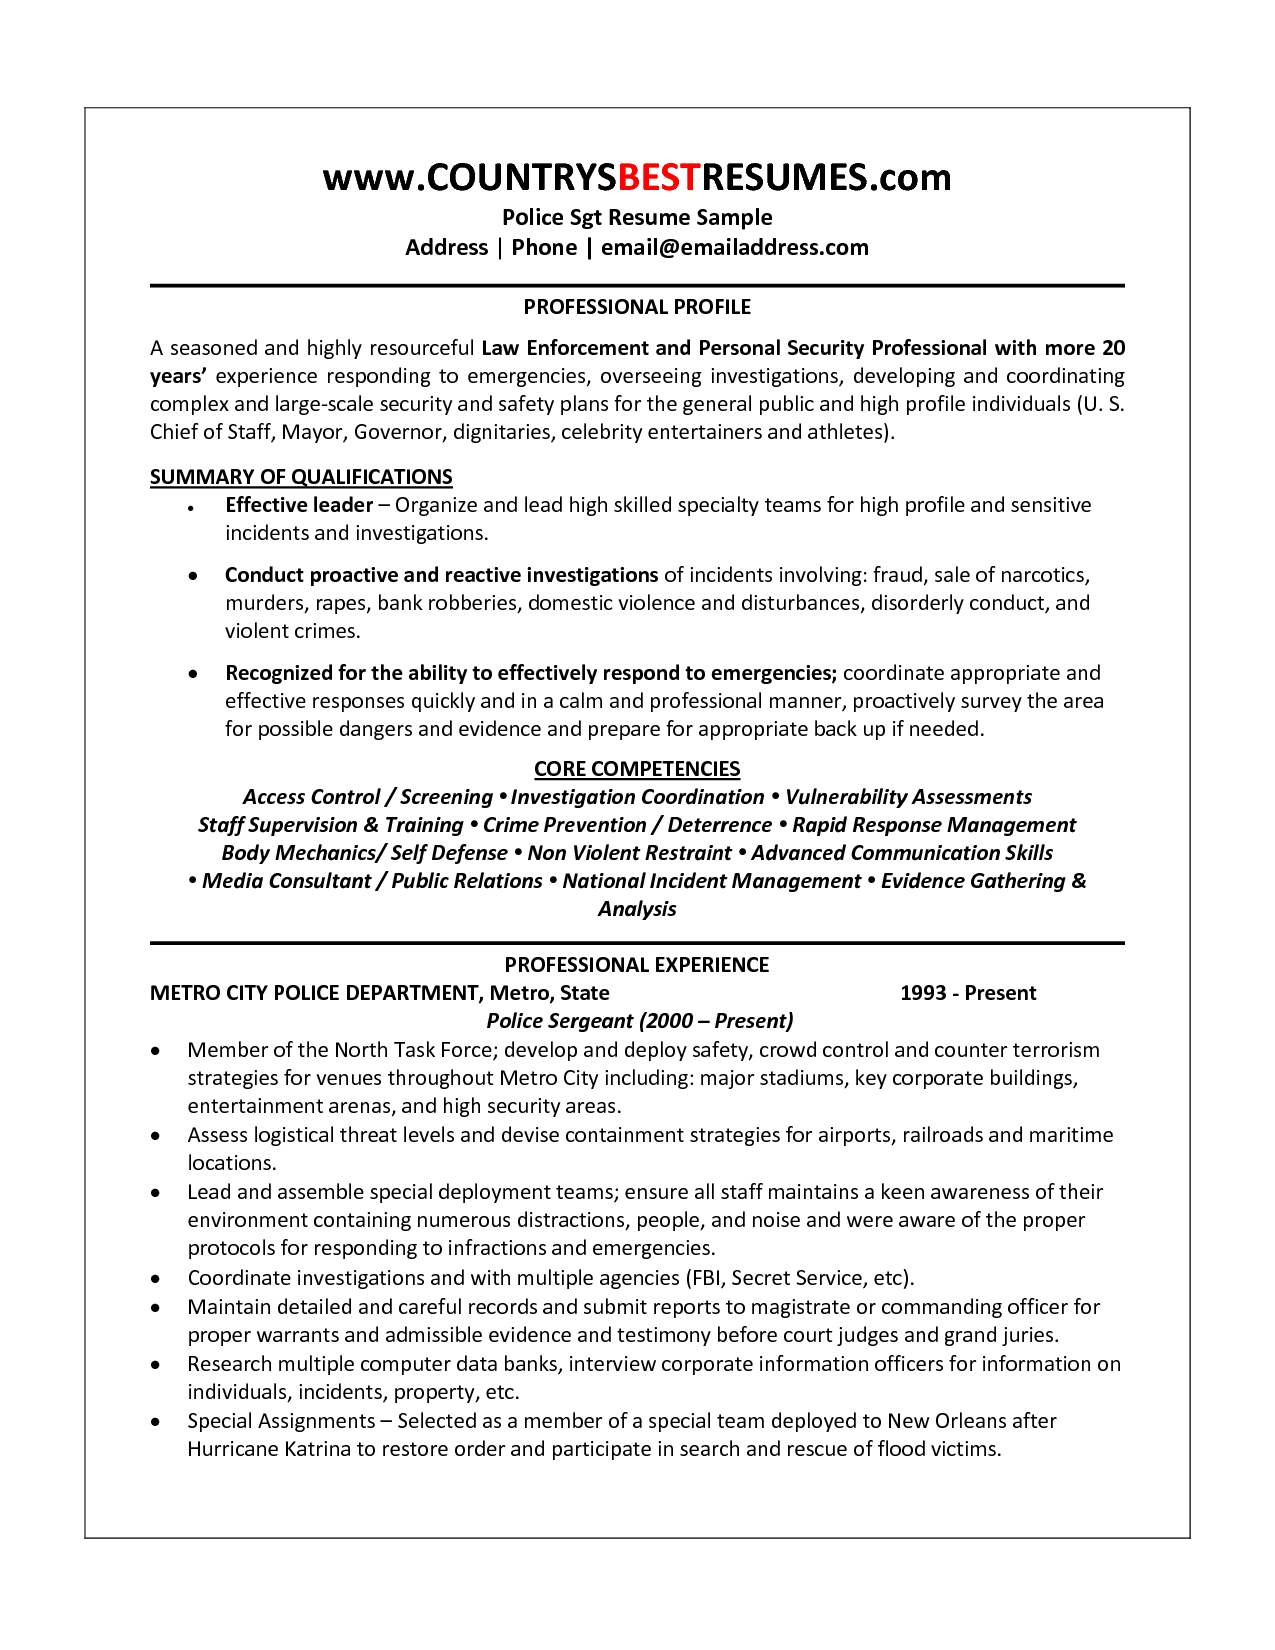 Police Officer Resume Sample Resumecareer Info Police